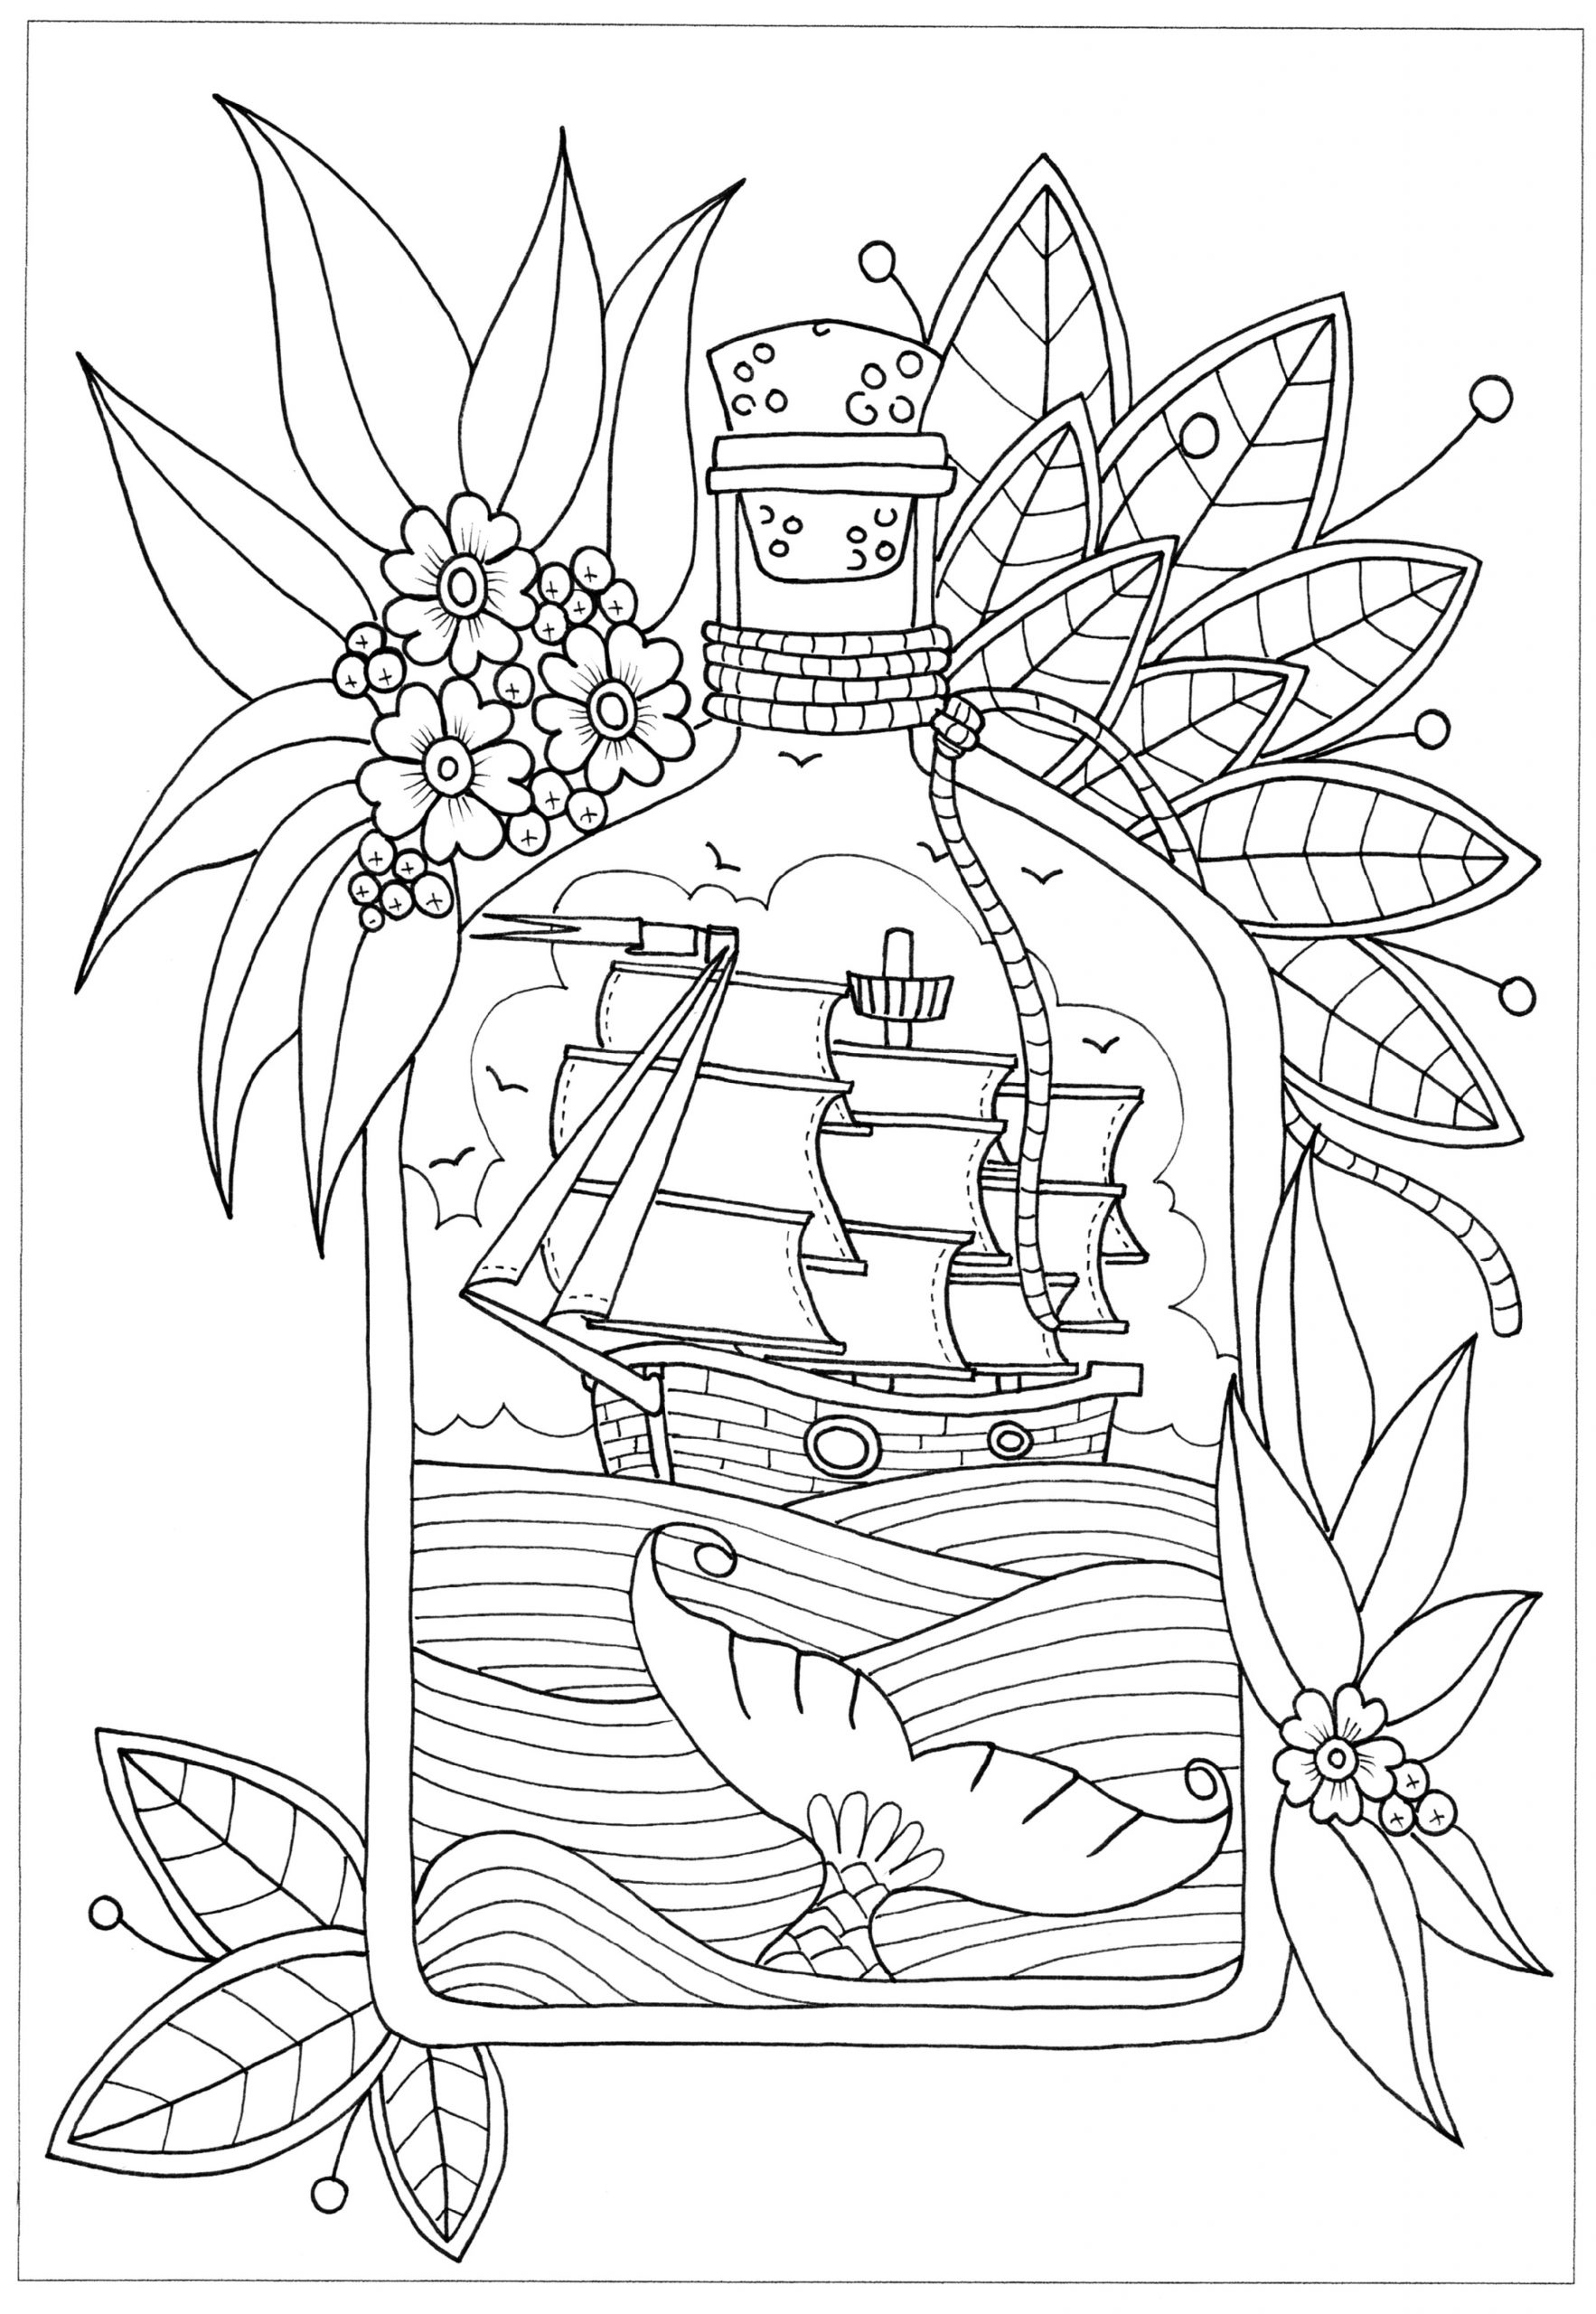 coloring book for adults printable pirate color pages 101 activity coloring book adults for